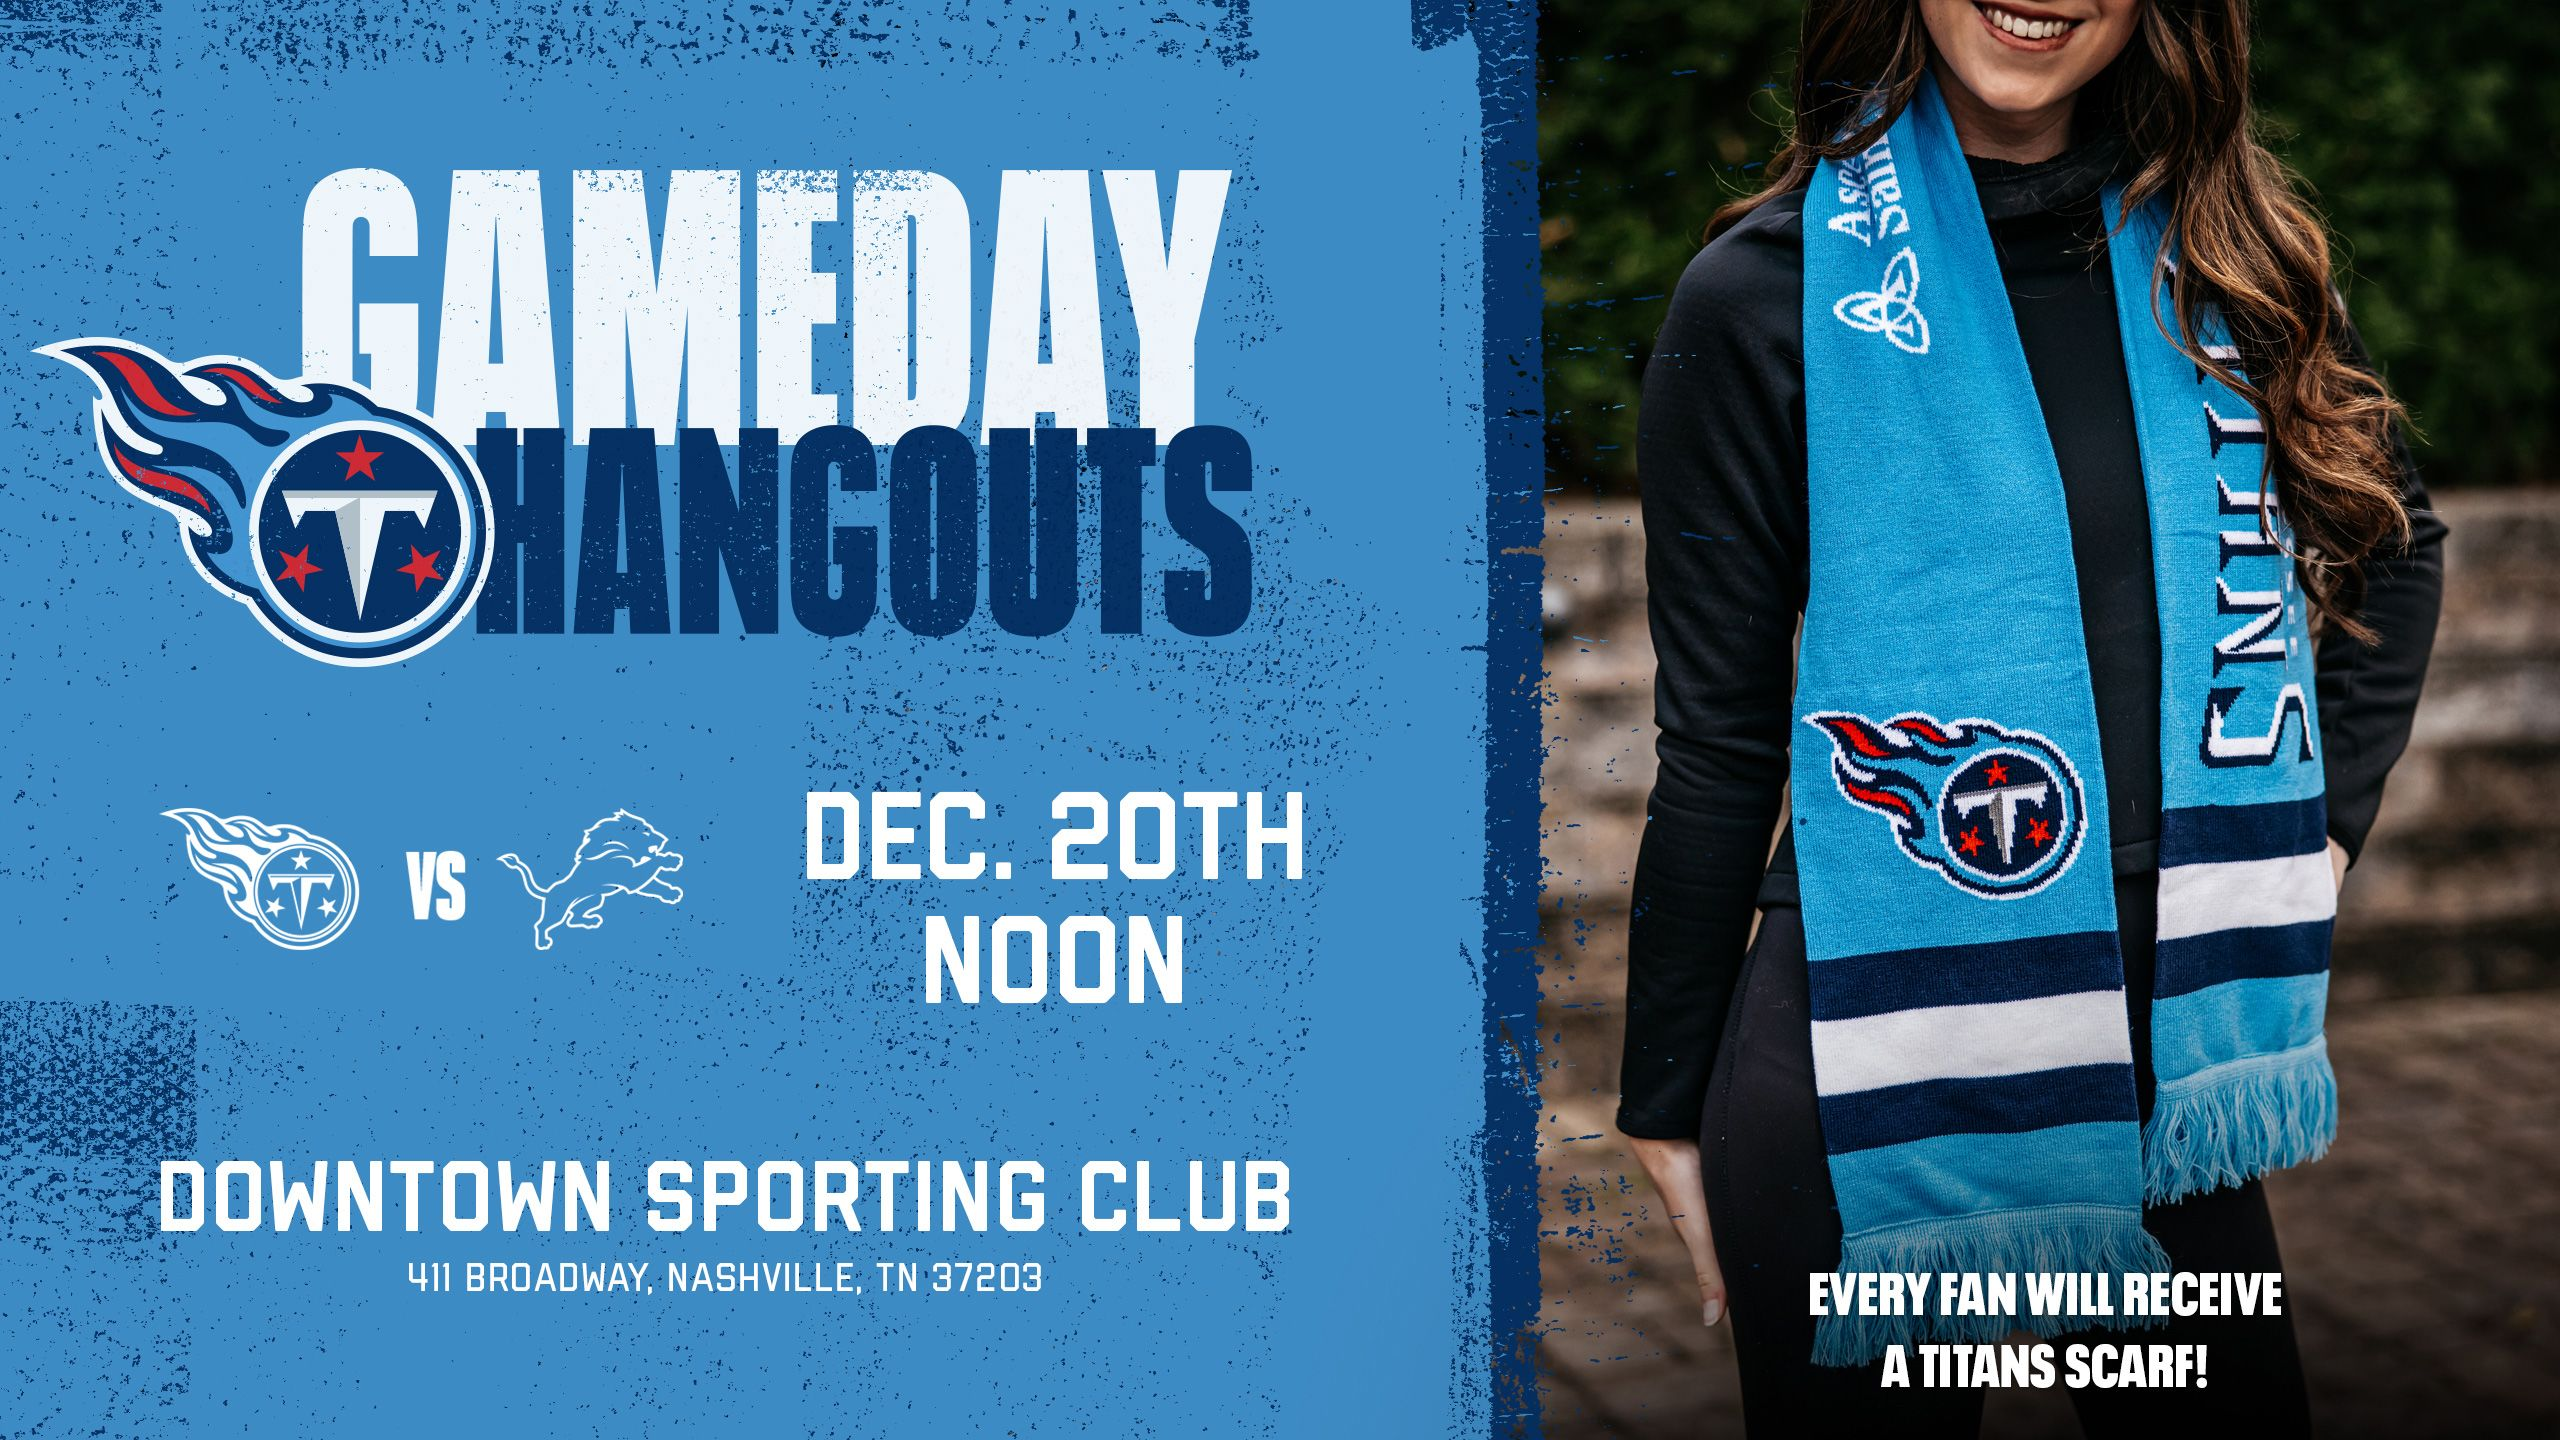 Featured Gameday Hangout for Titans vs. Lions - Sunday, Dec. 20th